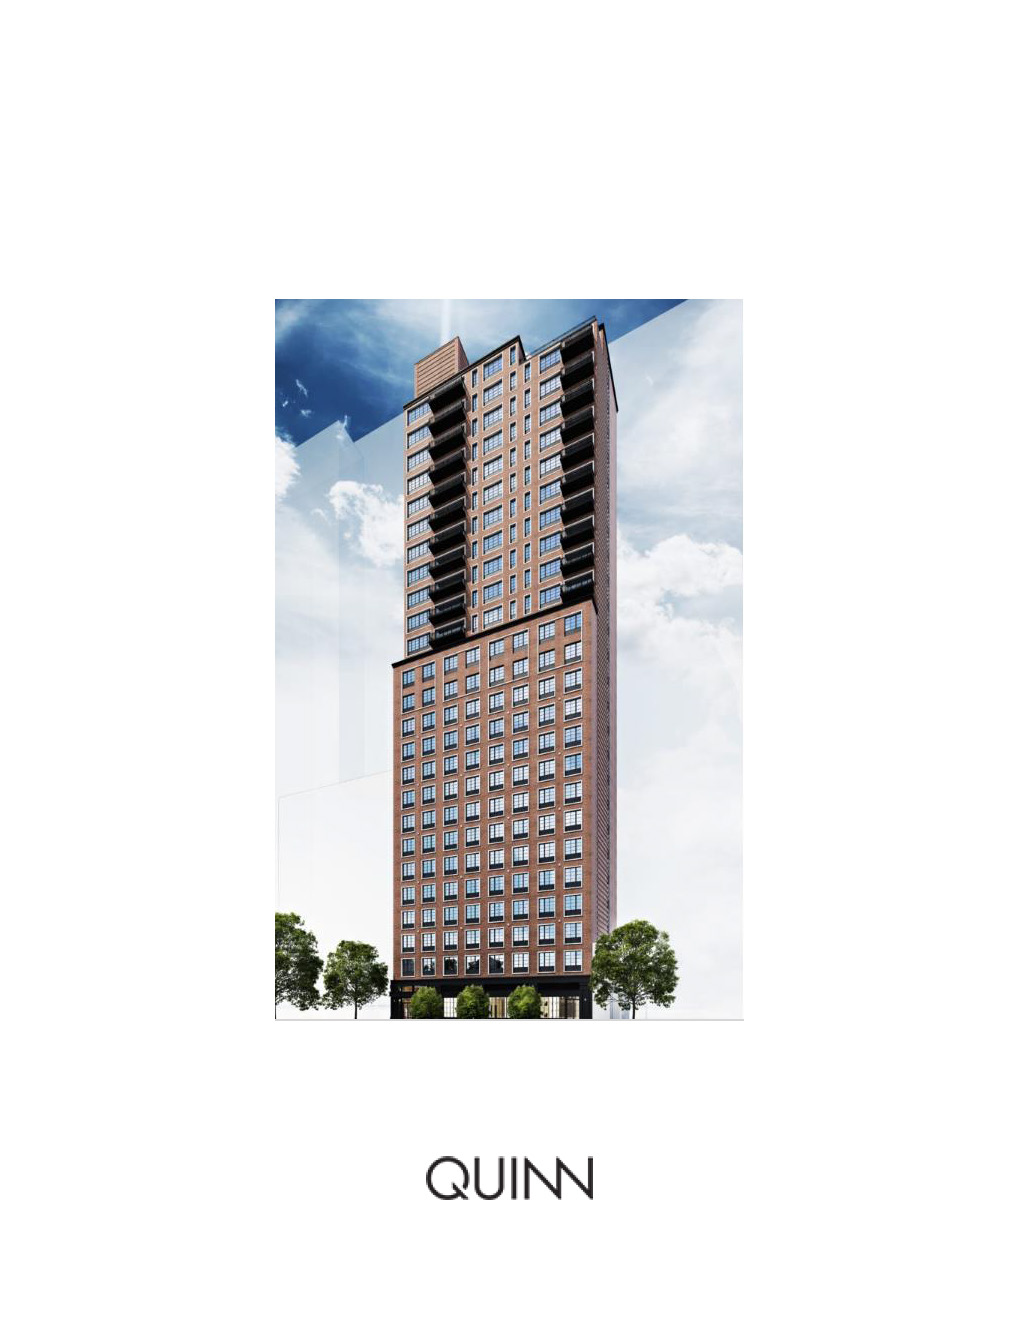 qns-tallest-condo-in-lic-has-units-starting-at-495000-9-27-16-1_page_4